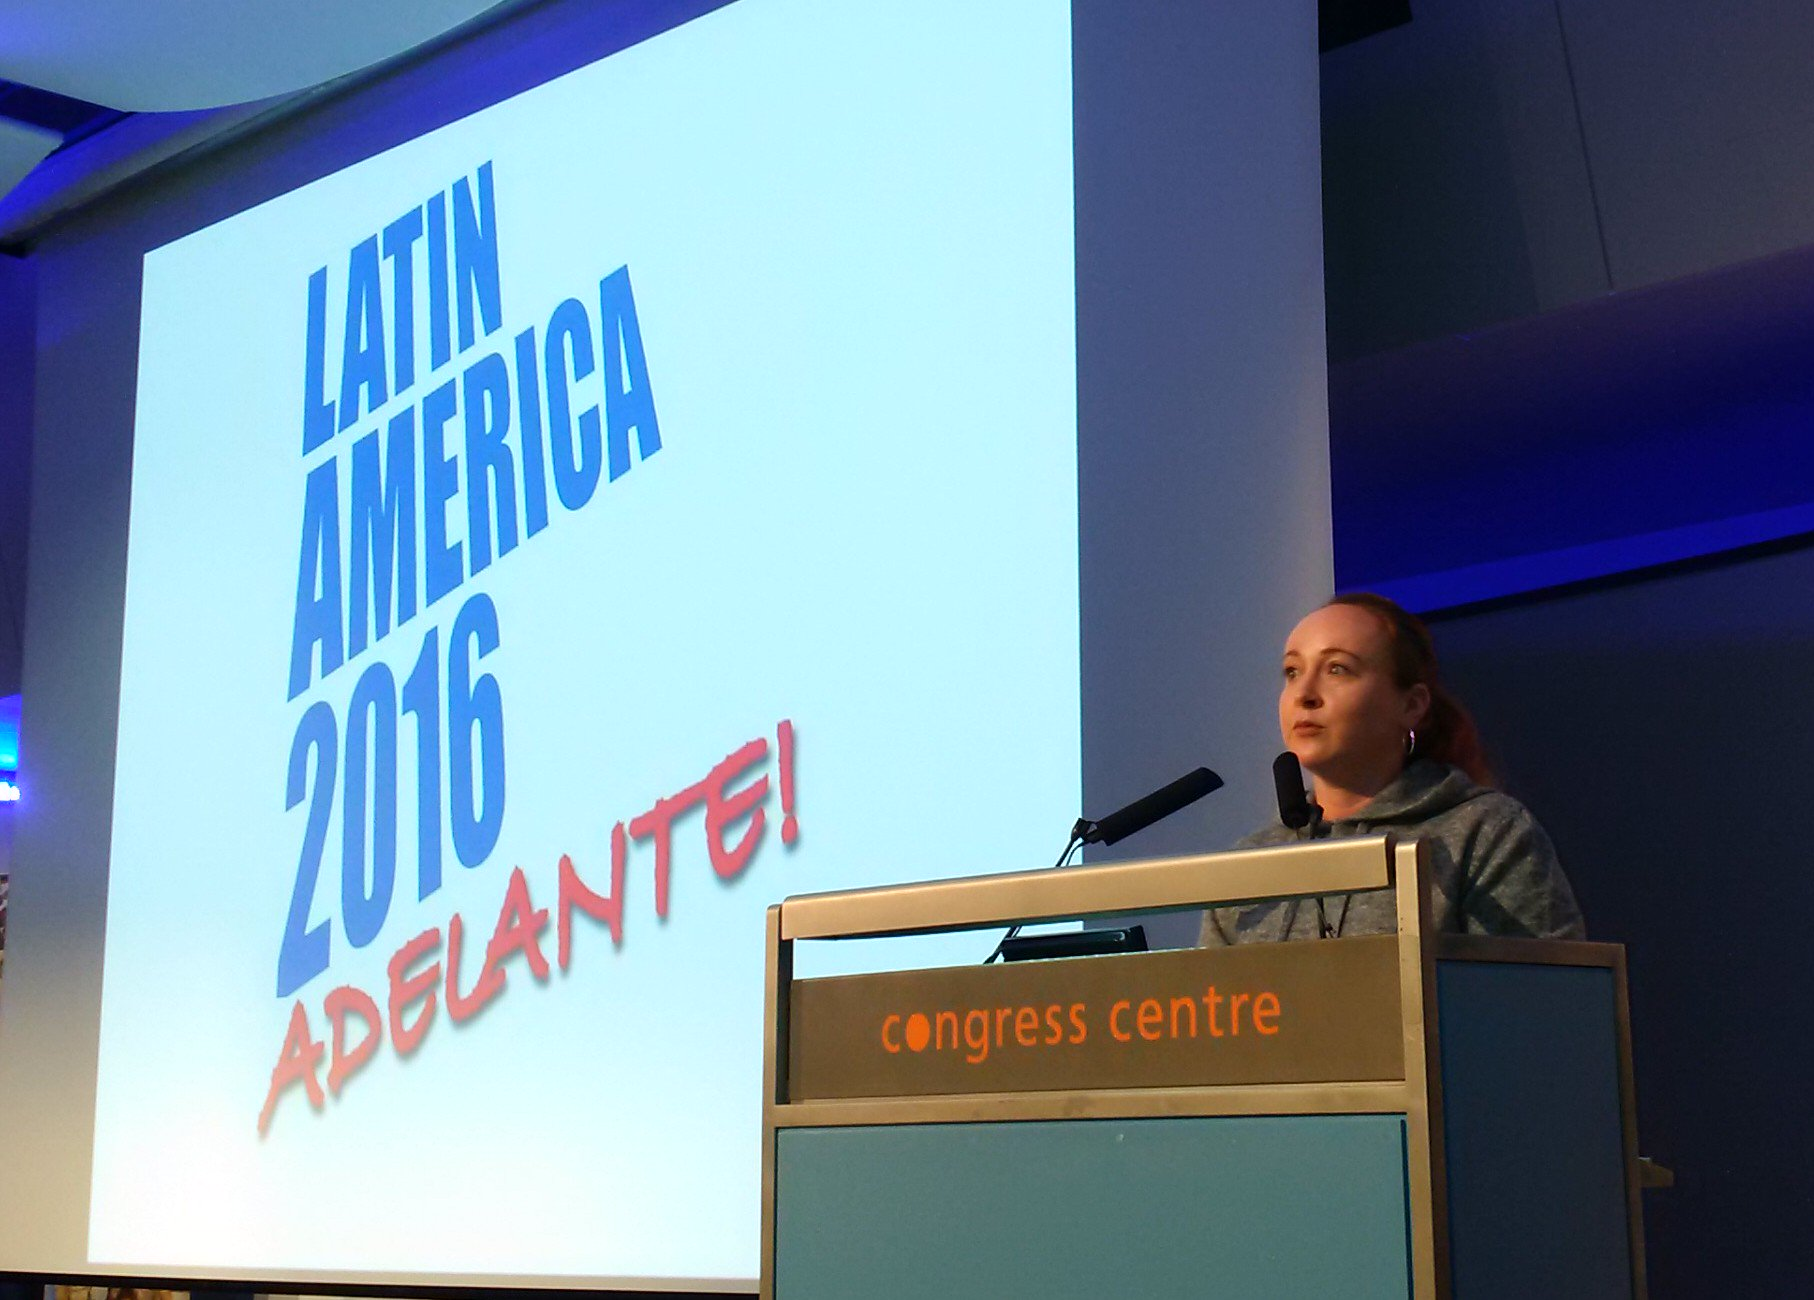 Tracy Delaney shares experience of recent @UNISON_global visit to Colombia @JFColombia @alboradafilms #LatAmerica16 https://t.co/YXZVELhx79